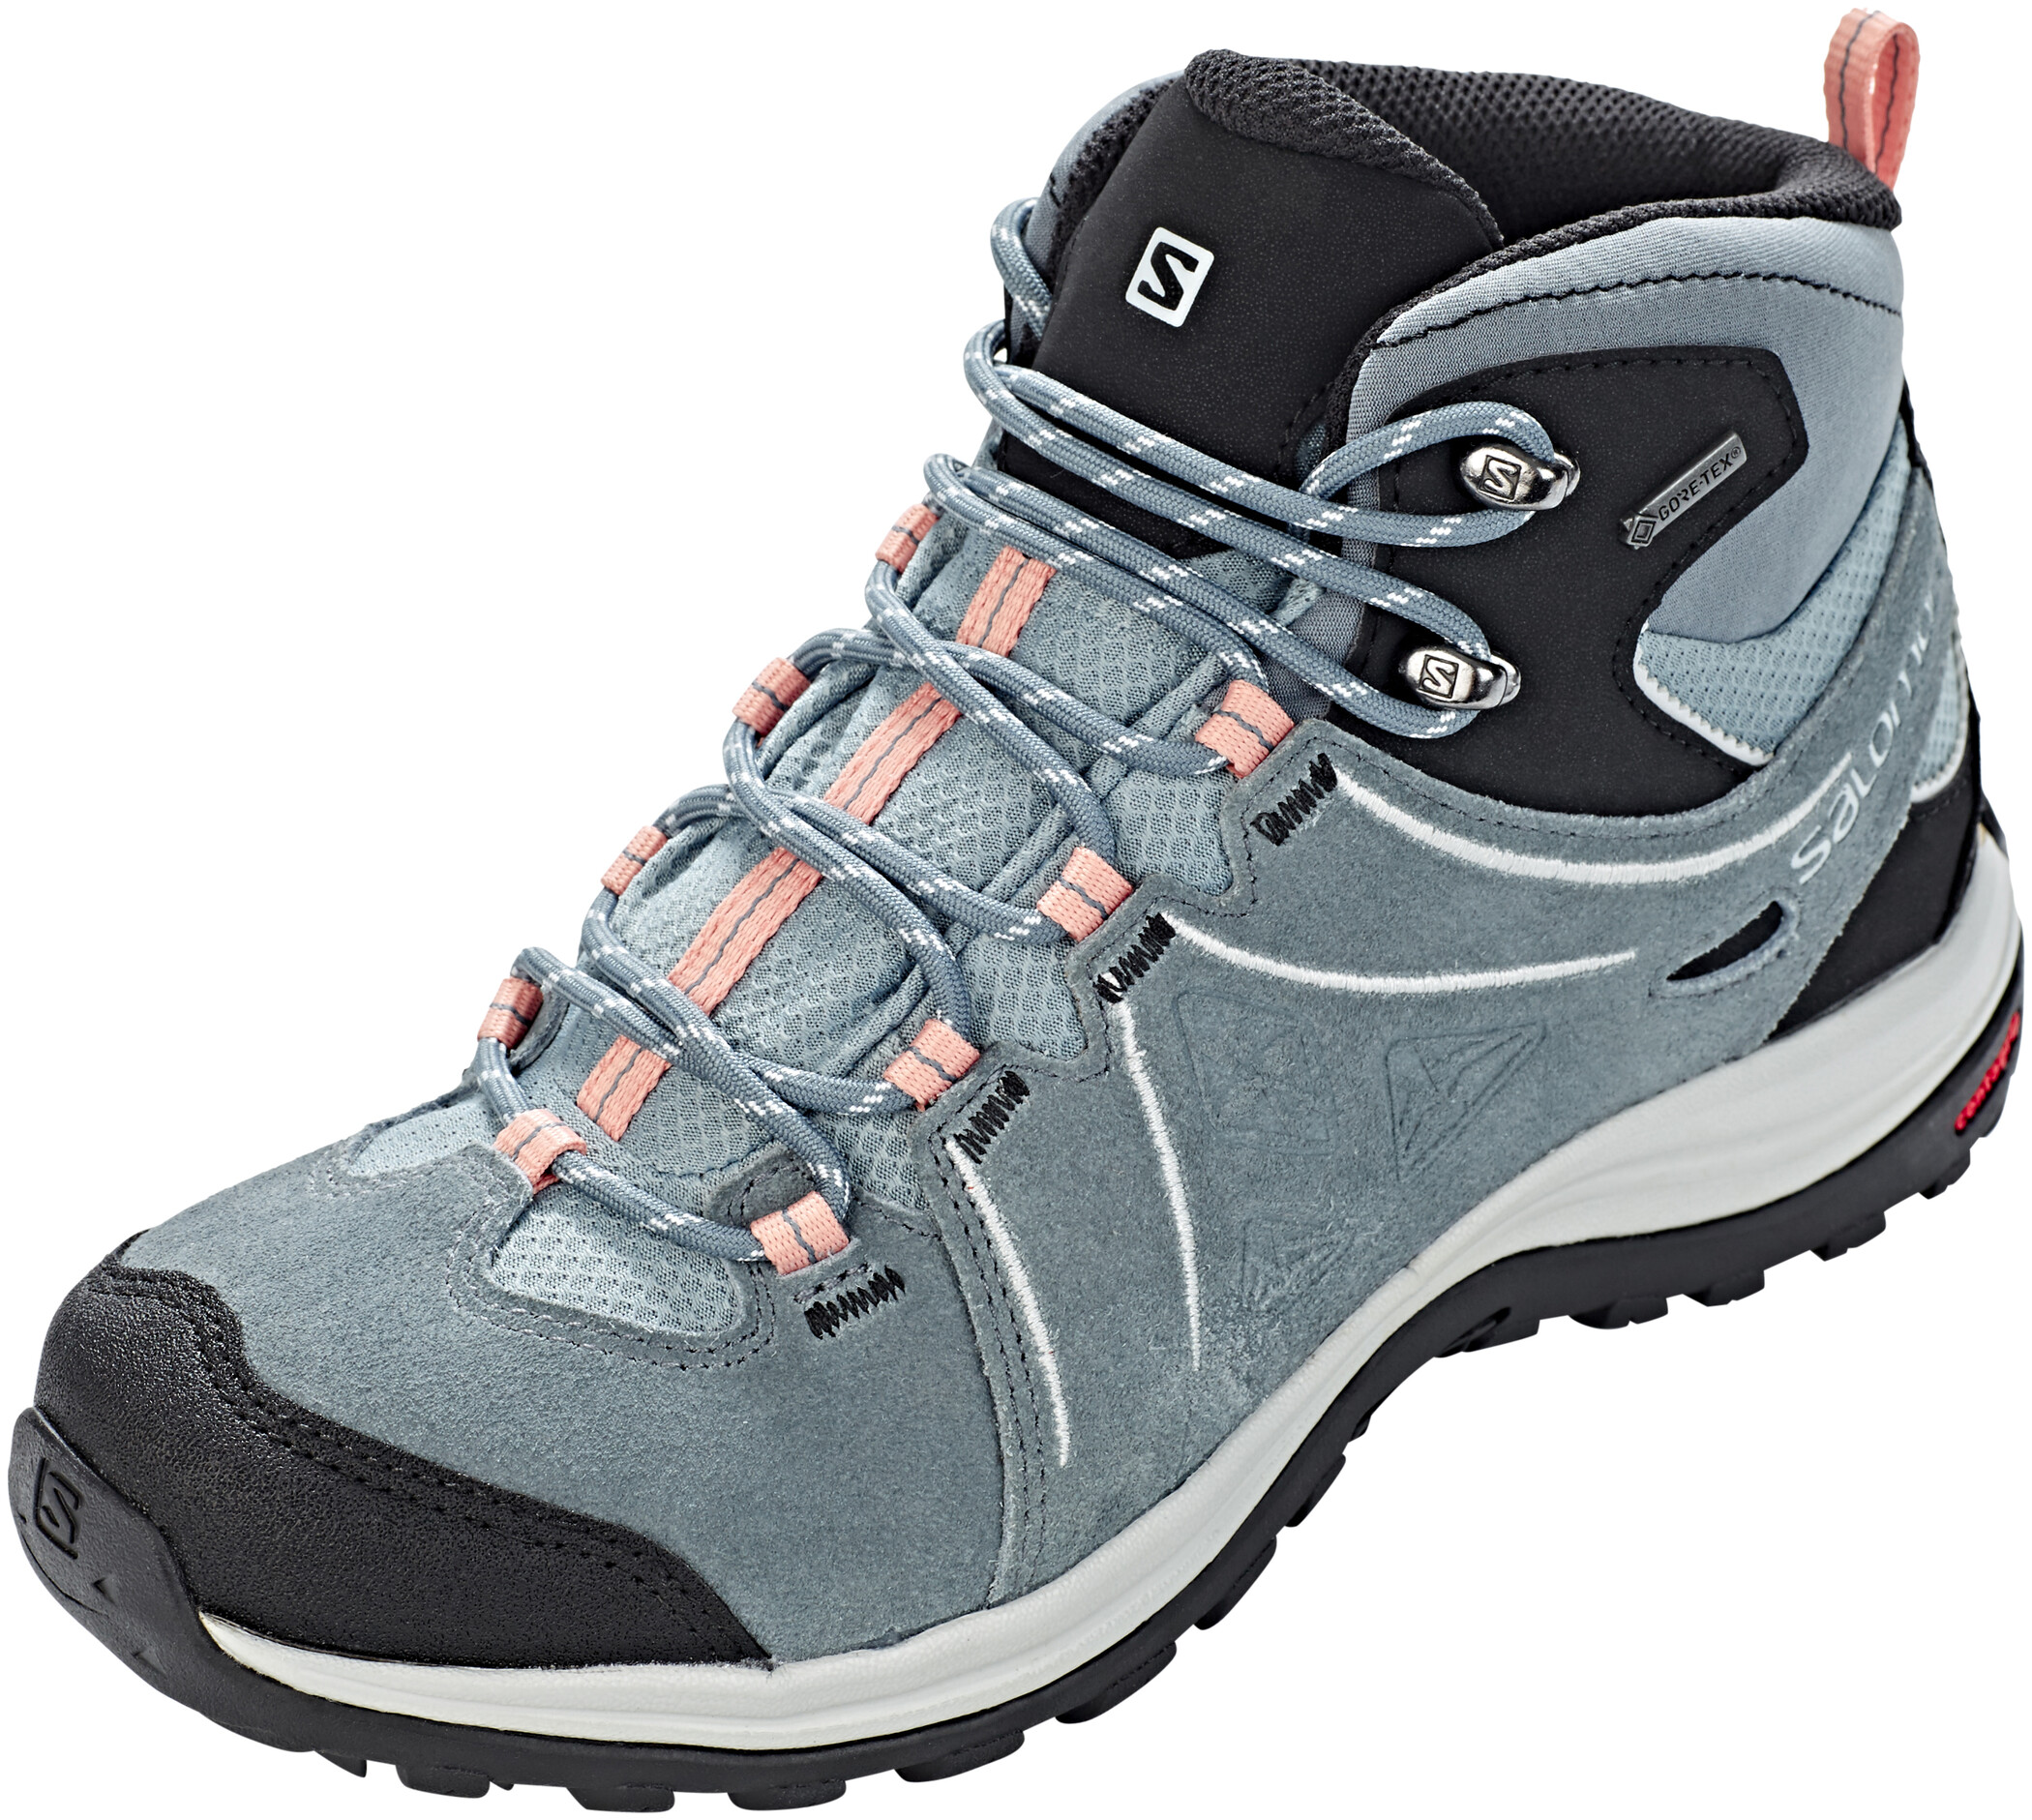 Salomon Ellipse 2 Mid LTR GTX Shoes Dam leadstormy weathercoral almond